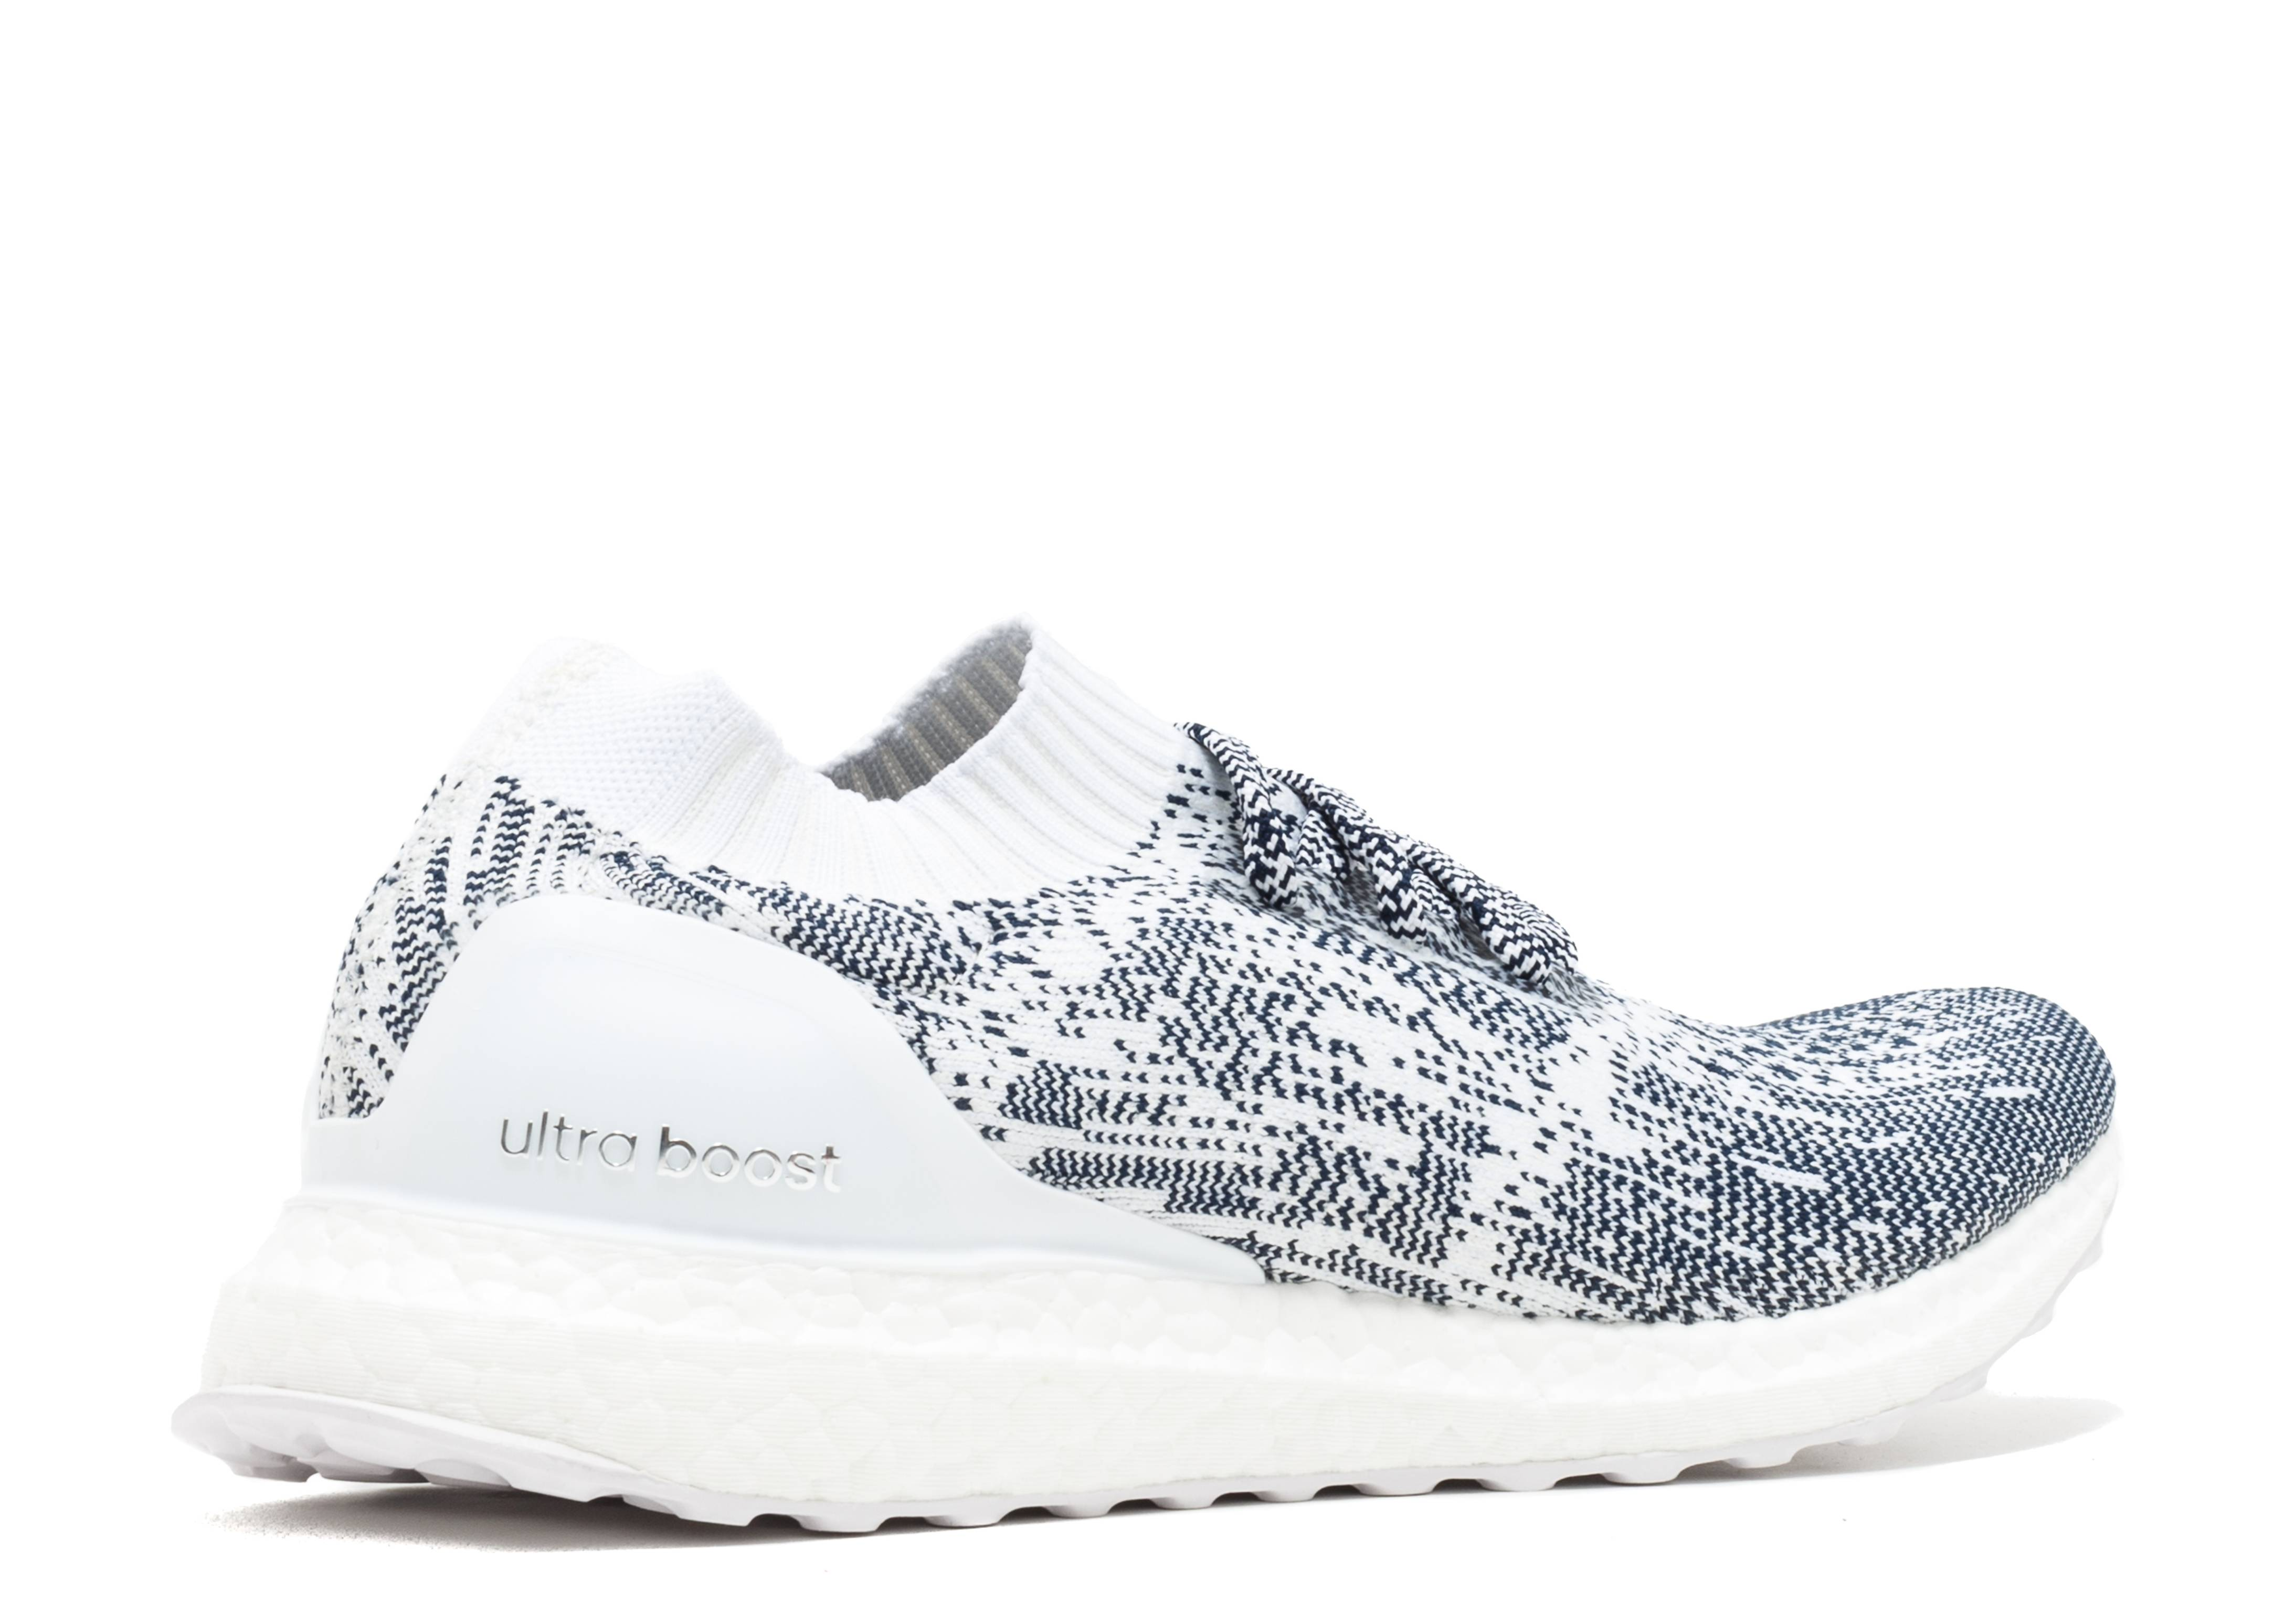 d69420e2f275e Adidas Ultra Boost Uncaged Non Dyed White Oreo - 3